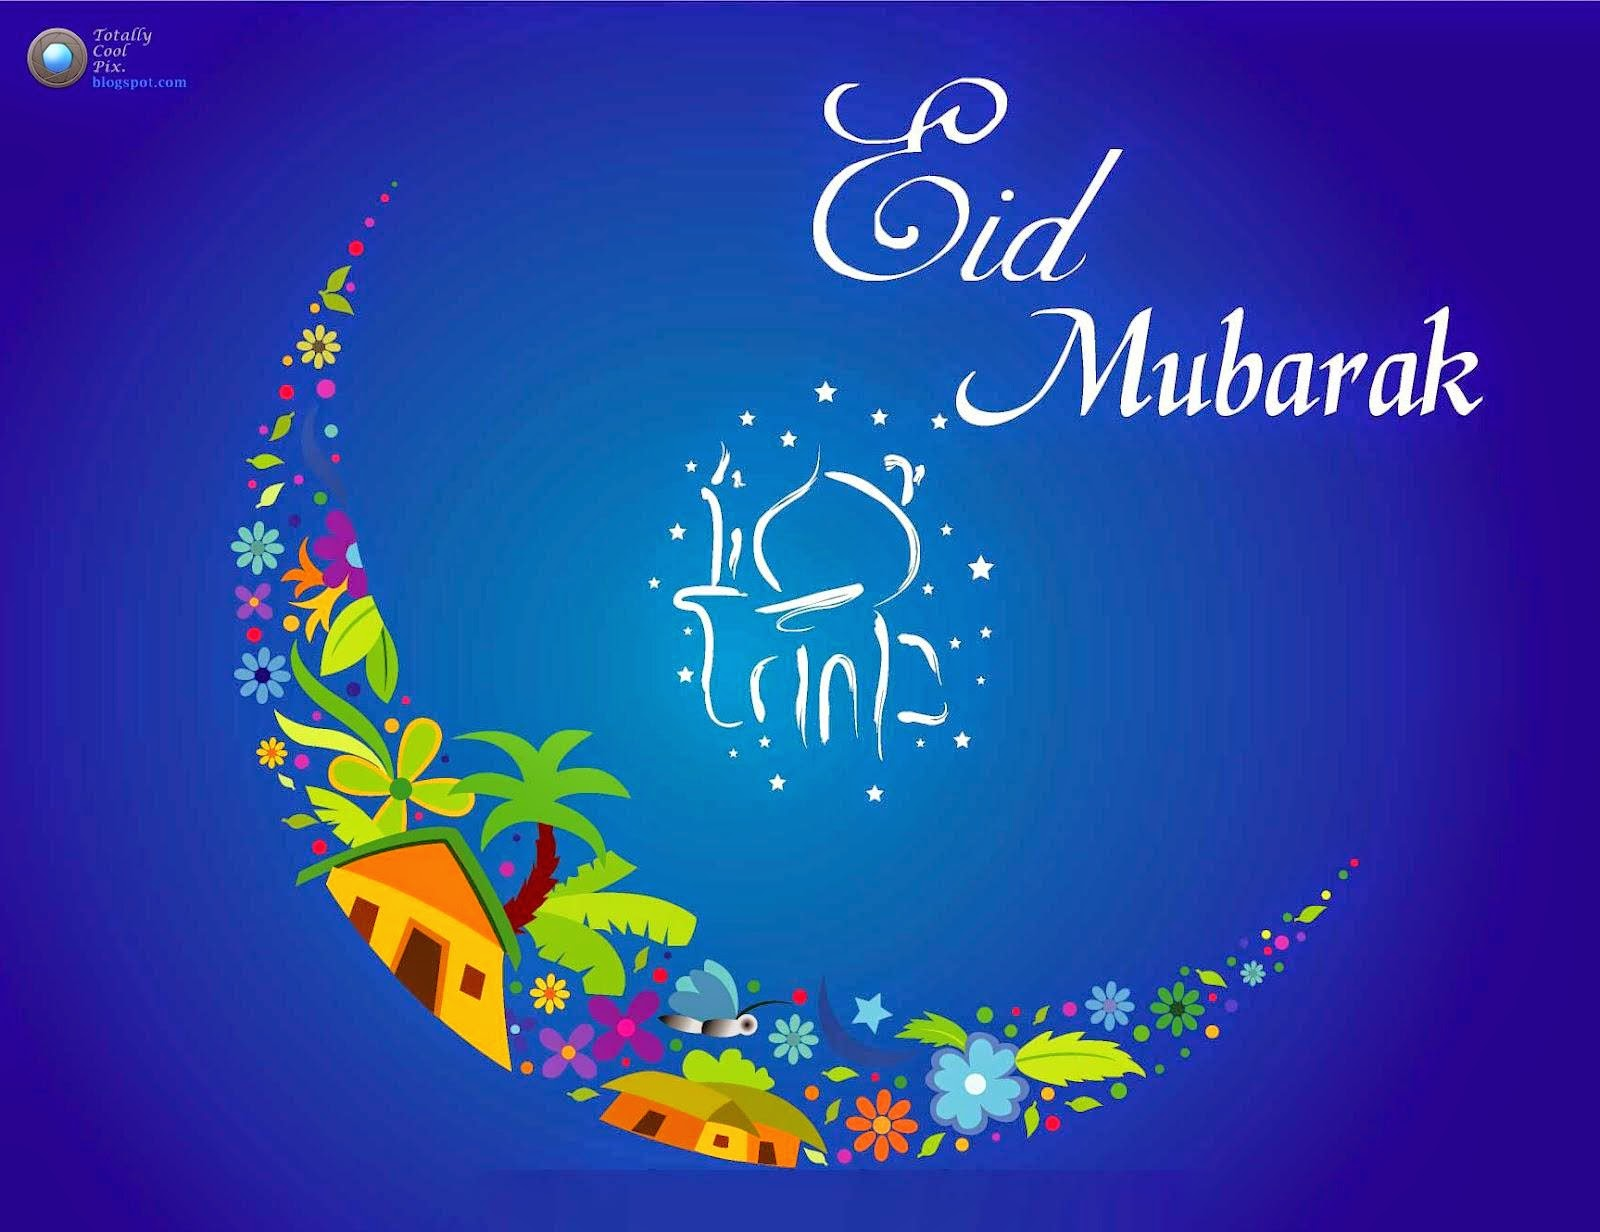 Eid Mubarak Sms Wishes For Your Friends And Families Happy Eid Al Fitr